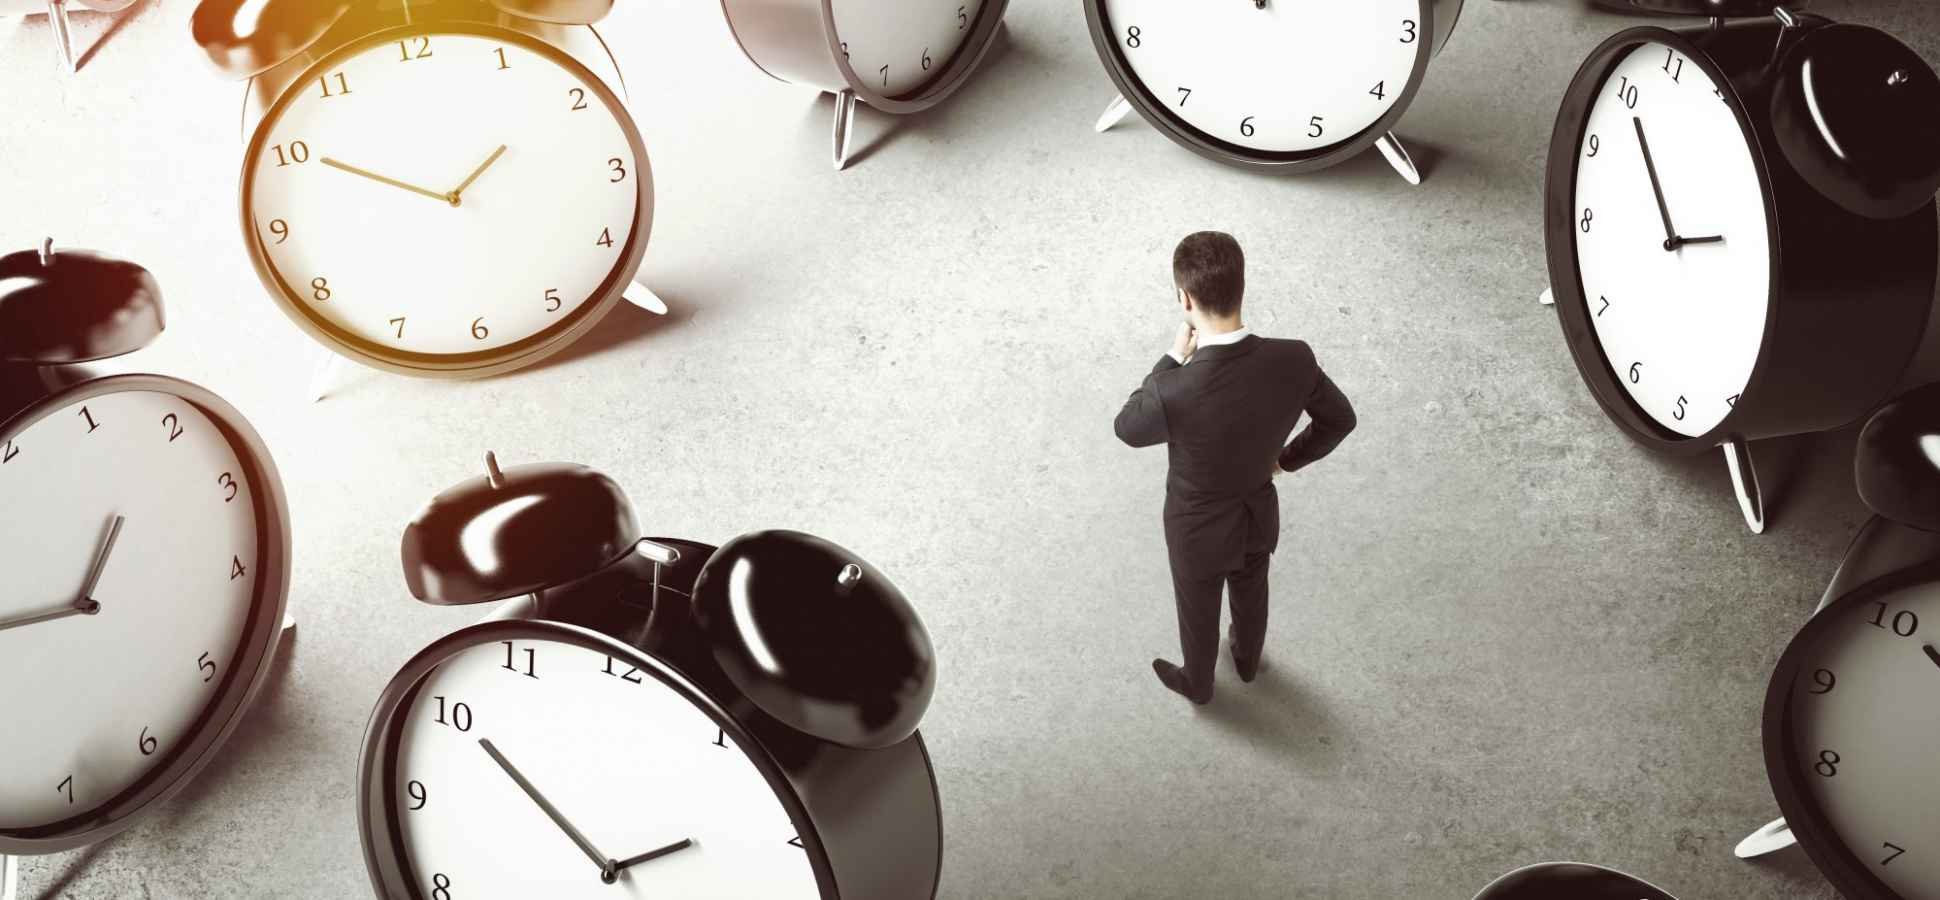 The Time-Management Hack I Wish I Had Known When I Was 25